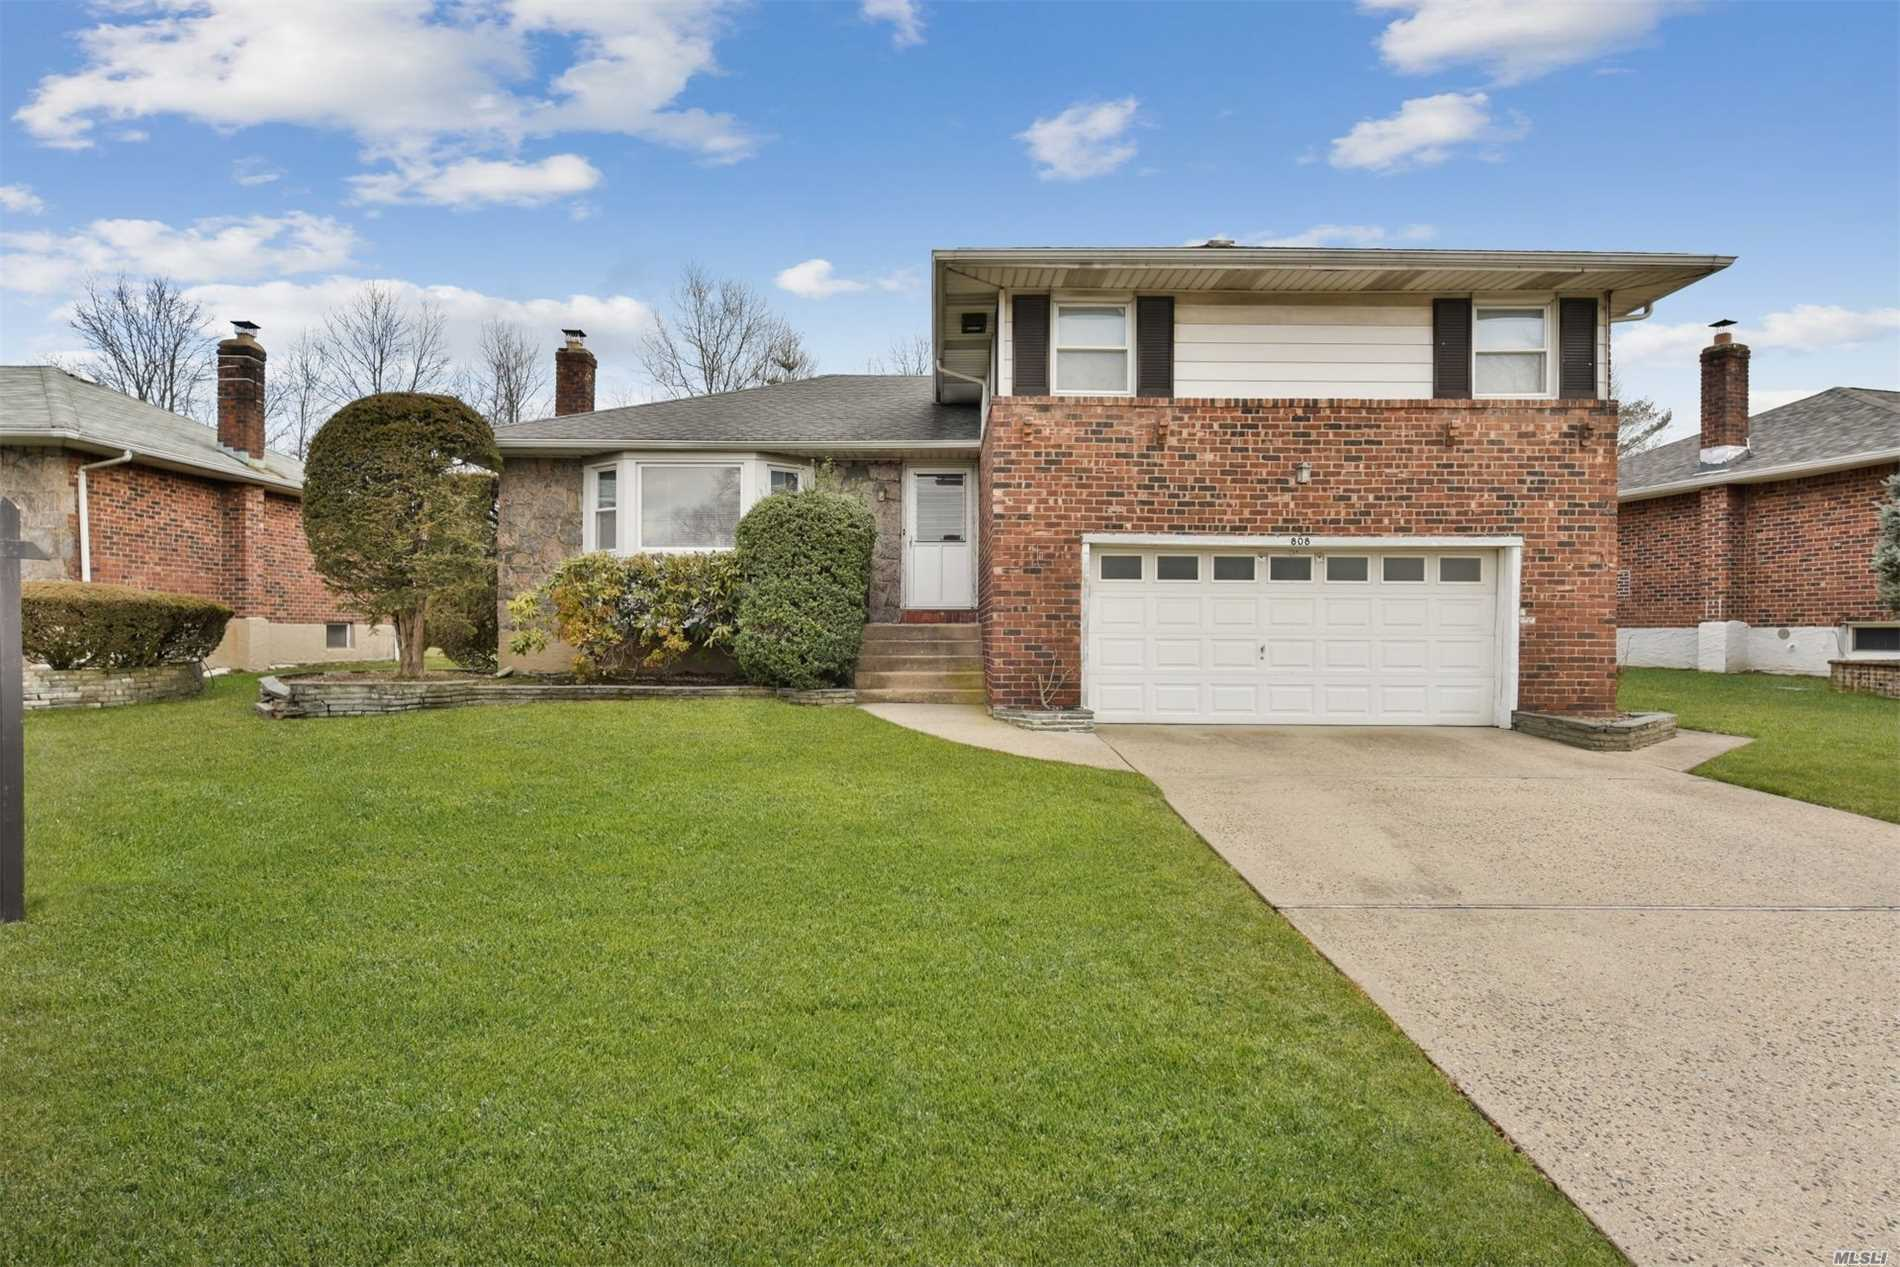 Must See This Lovely Split In Prime Salisbury Estates, Featuring 3 Spacious Bedrooms, 2.5 Baths, Large Living Room, Formal Dining Room, Great Eat-In-Kitchen, Whole House Has Been Freshly Painted, Hardwood Floors Throughout, Den With New Floors And Sliders To A Private Backyard, 2-Car Attached Garage.